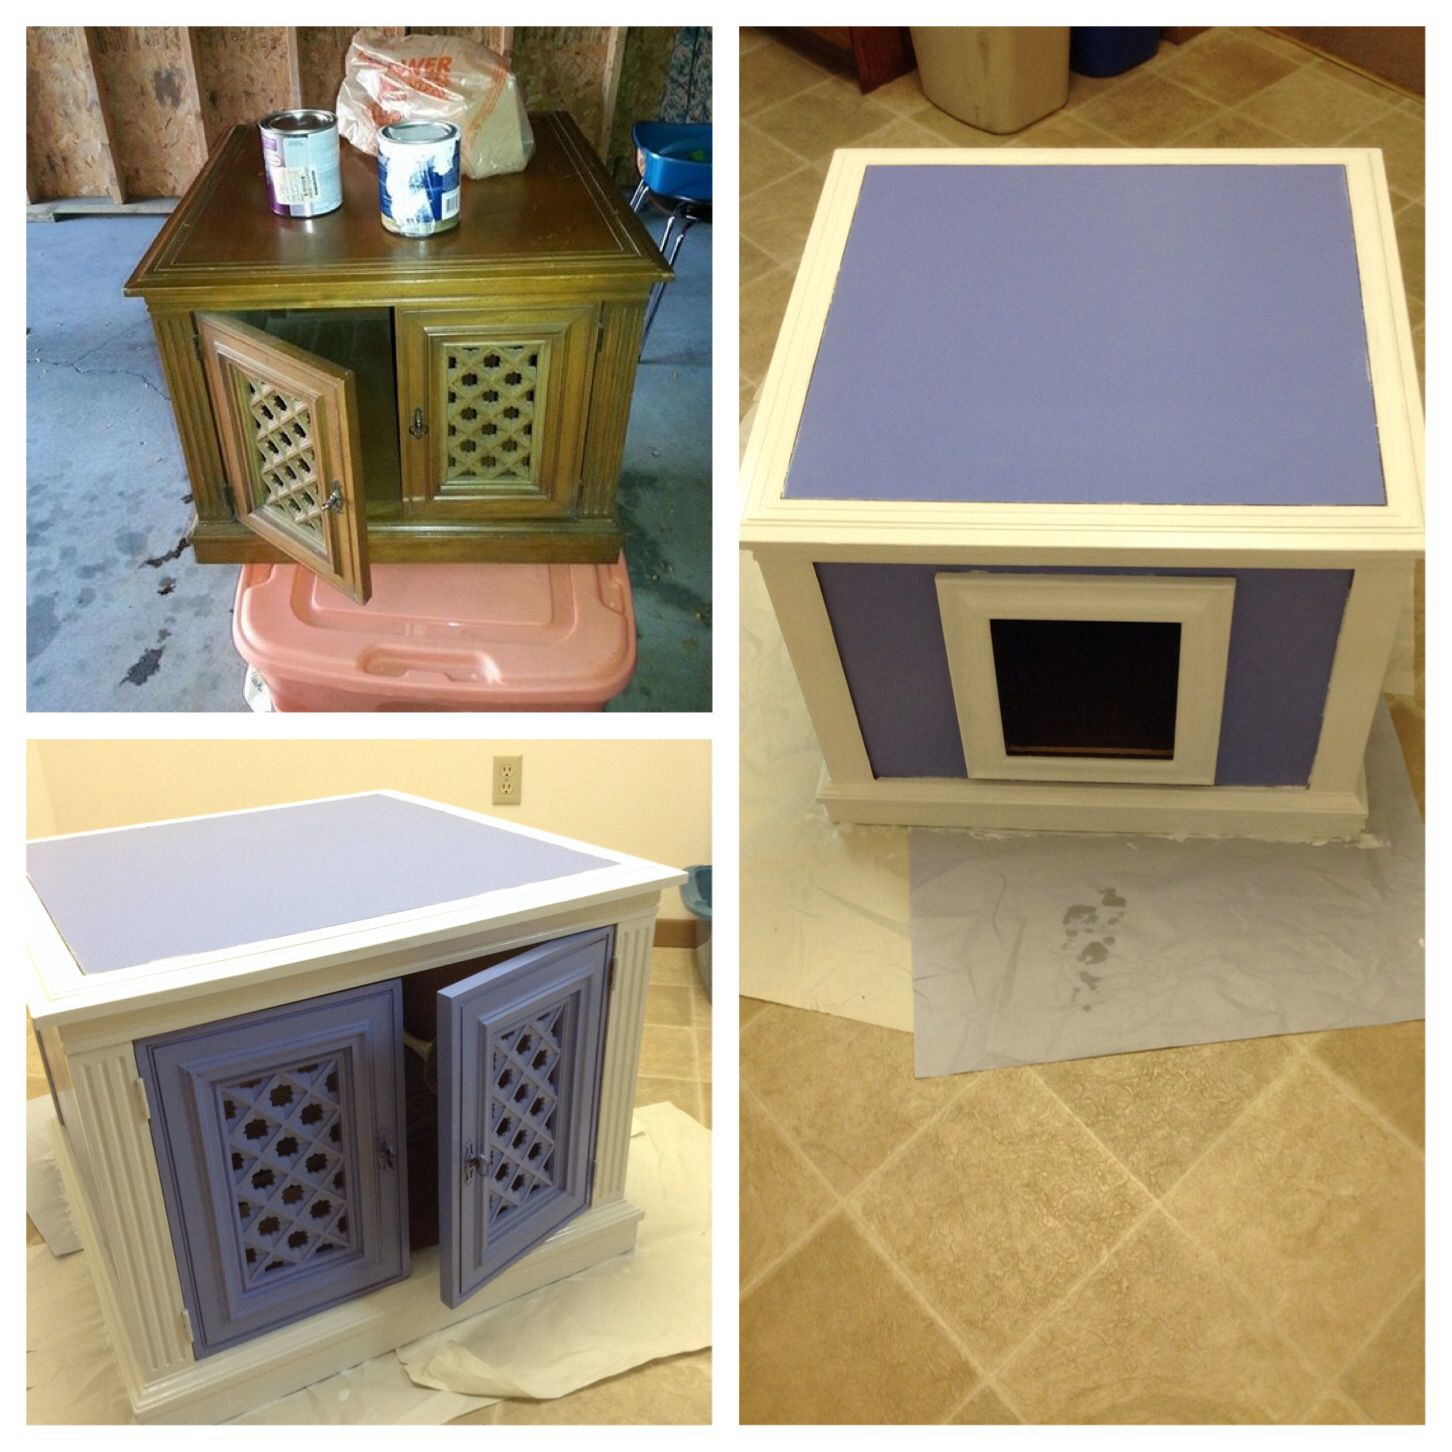 Cat litter box cabinet bought the cabinet for and an ugly frame